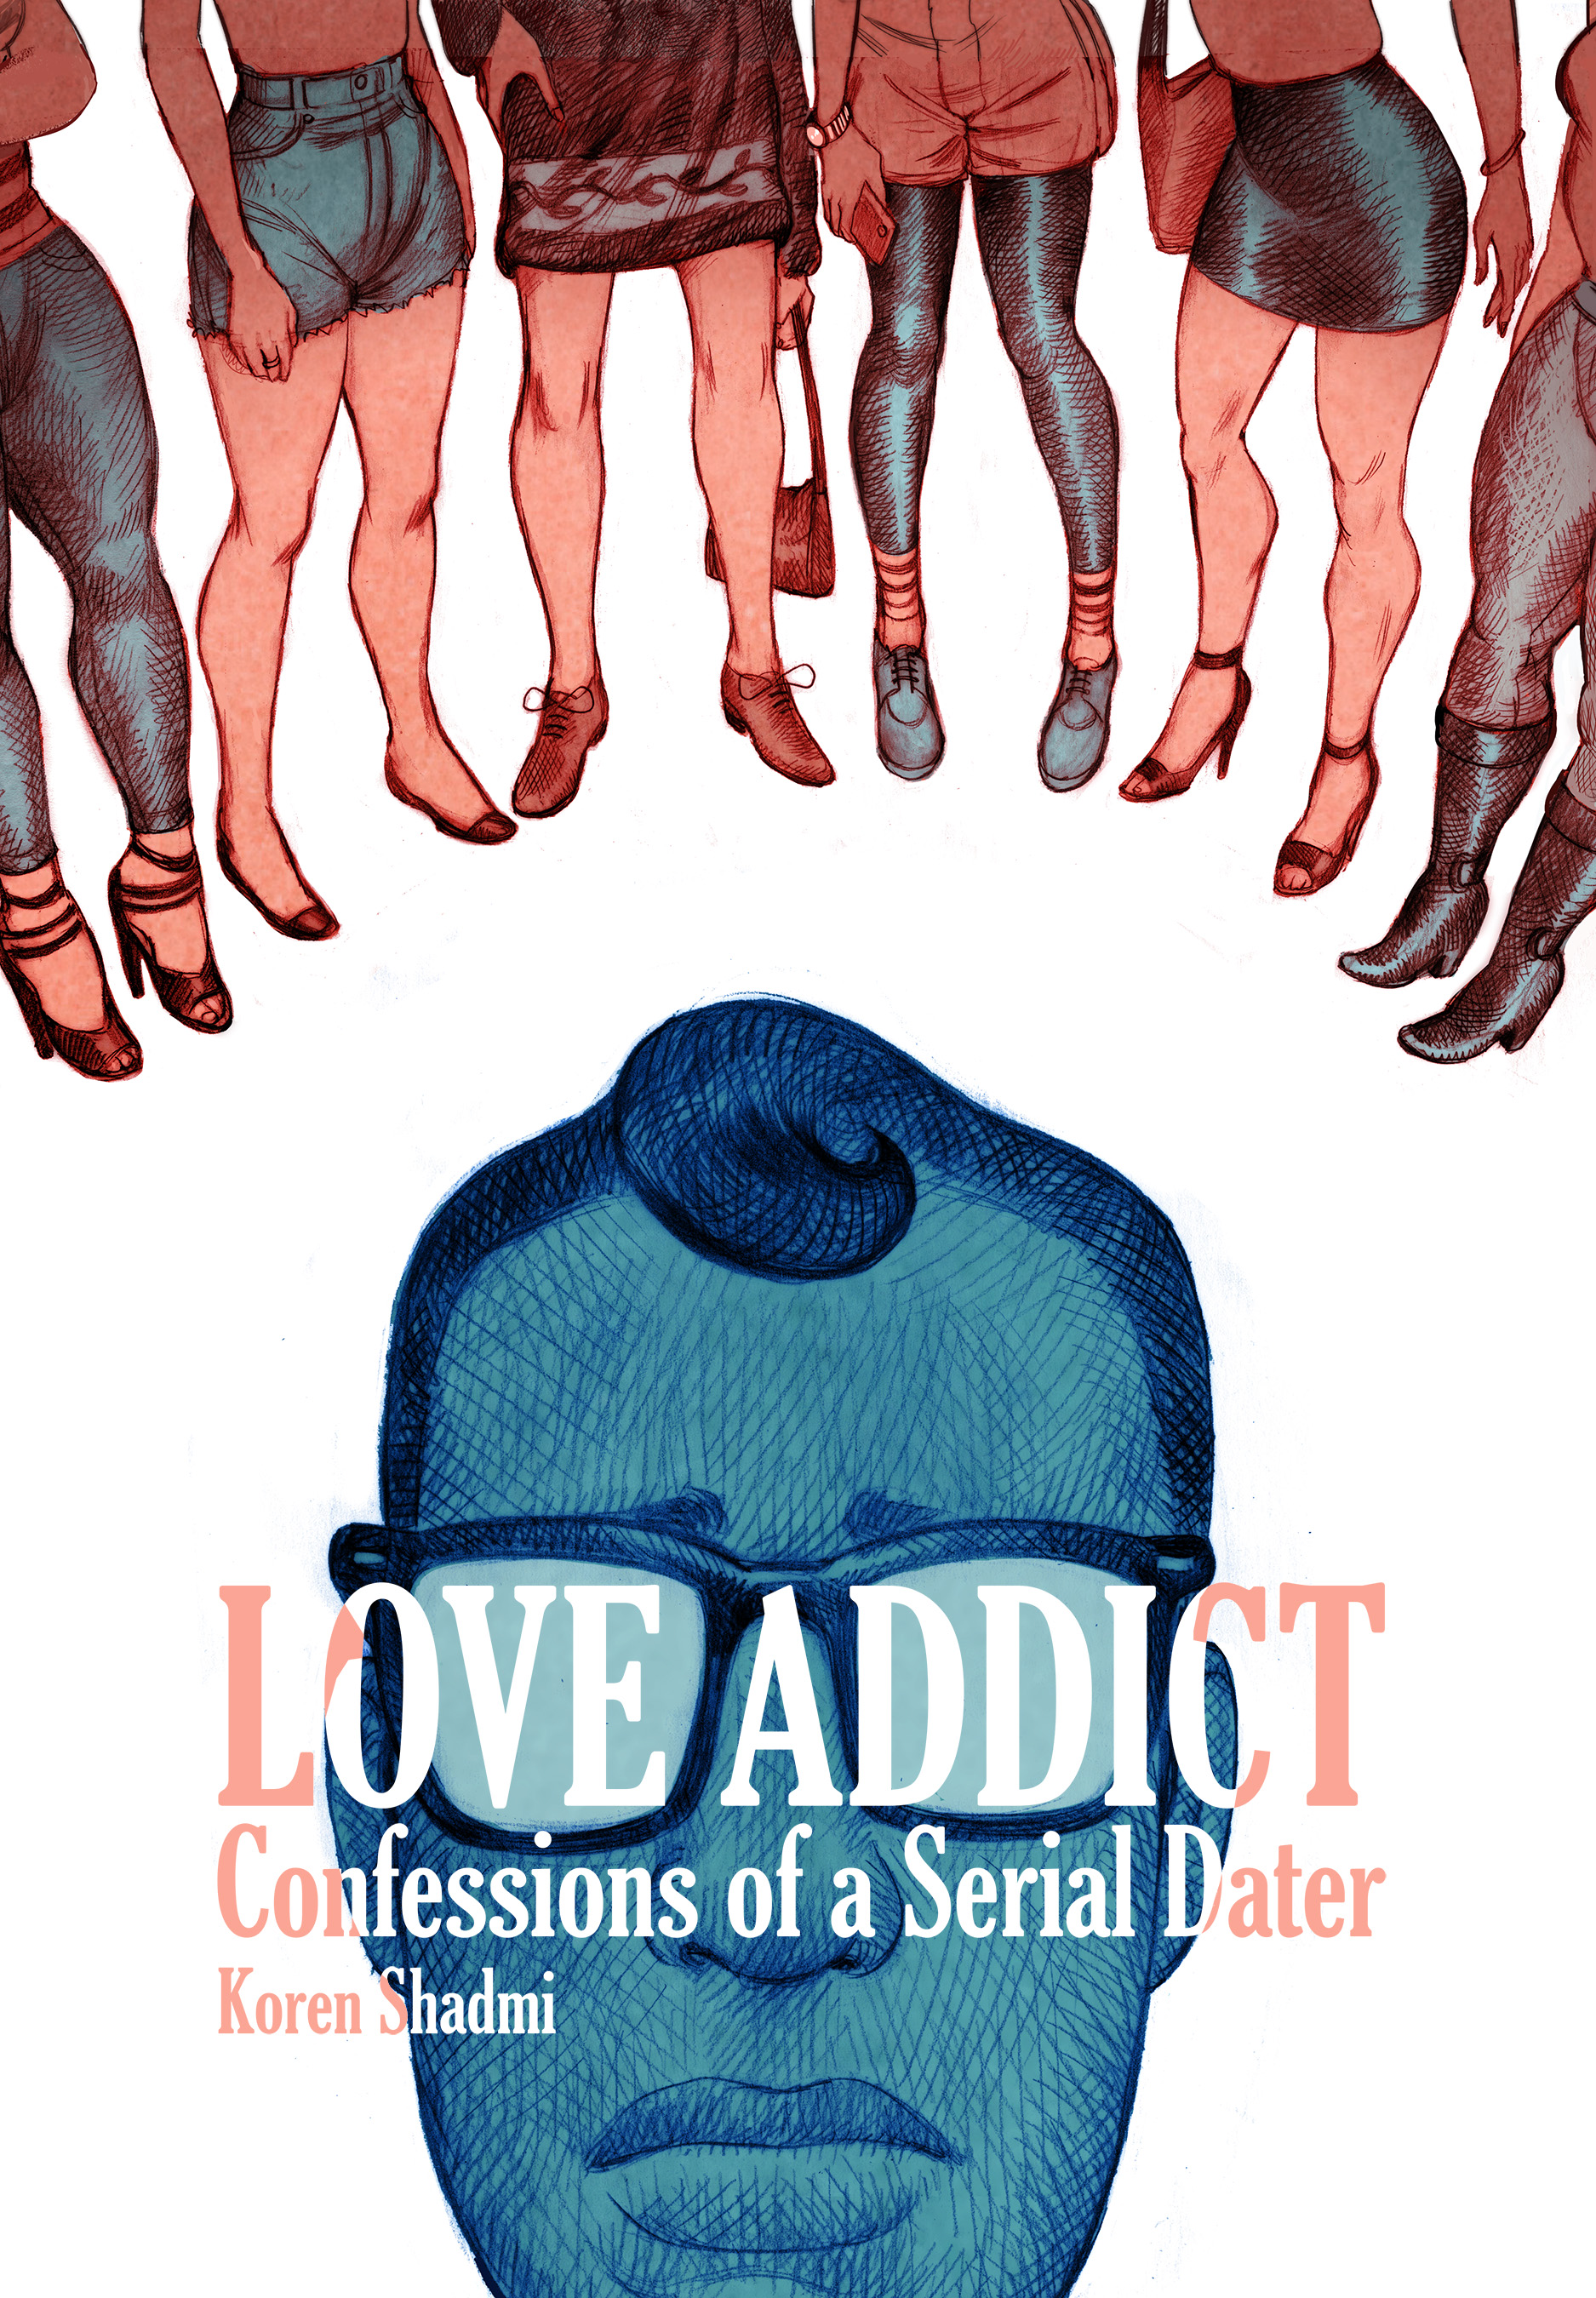 love-addict-300dpi-front-cover